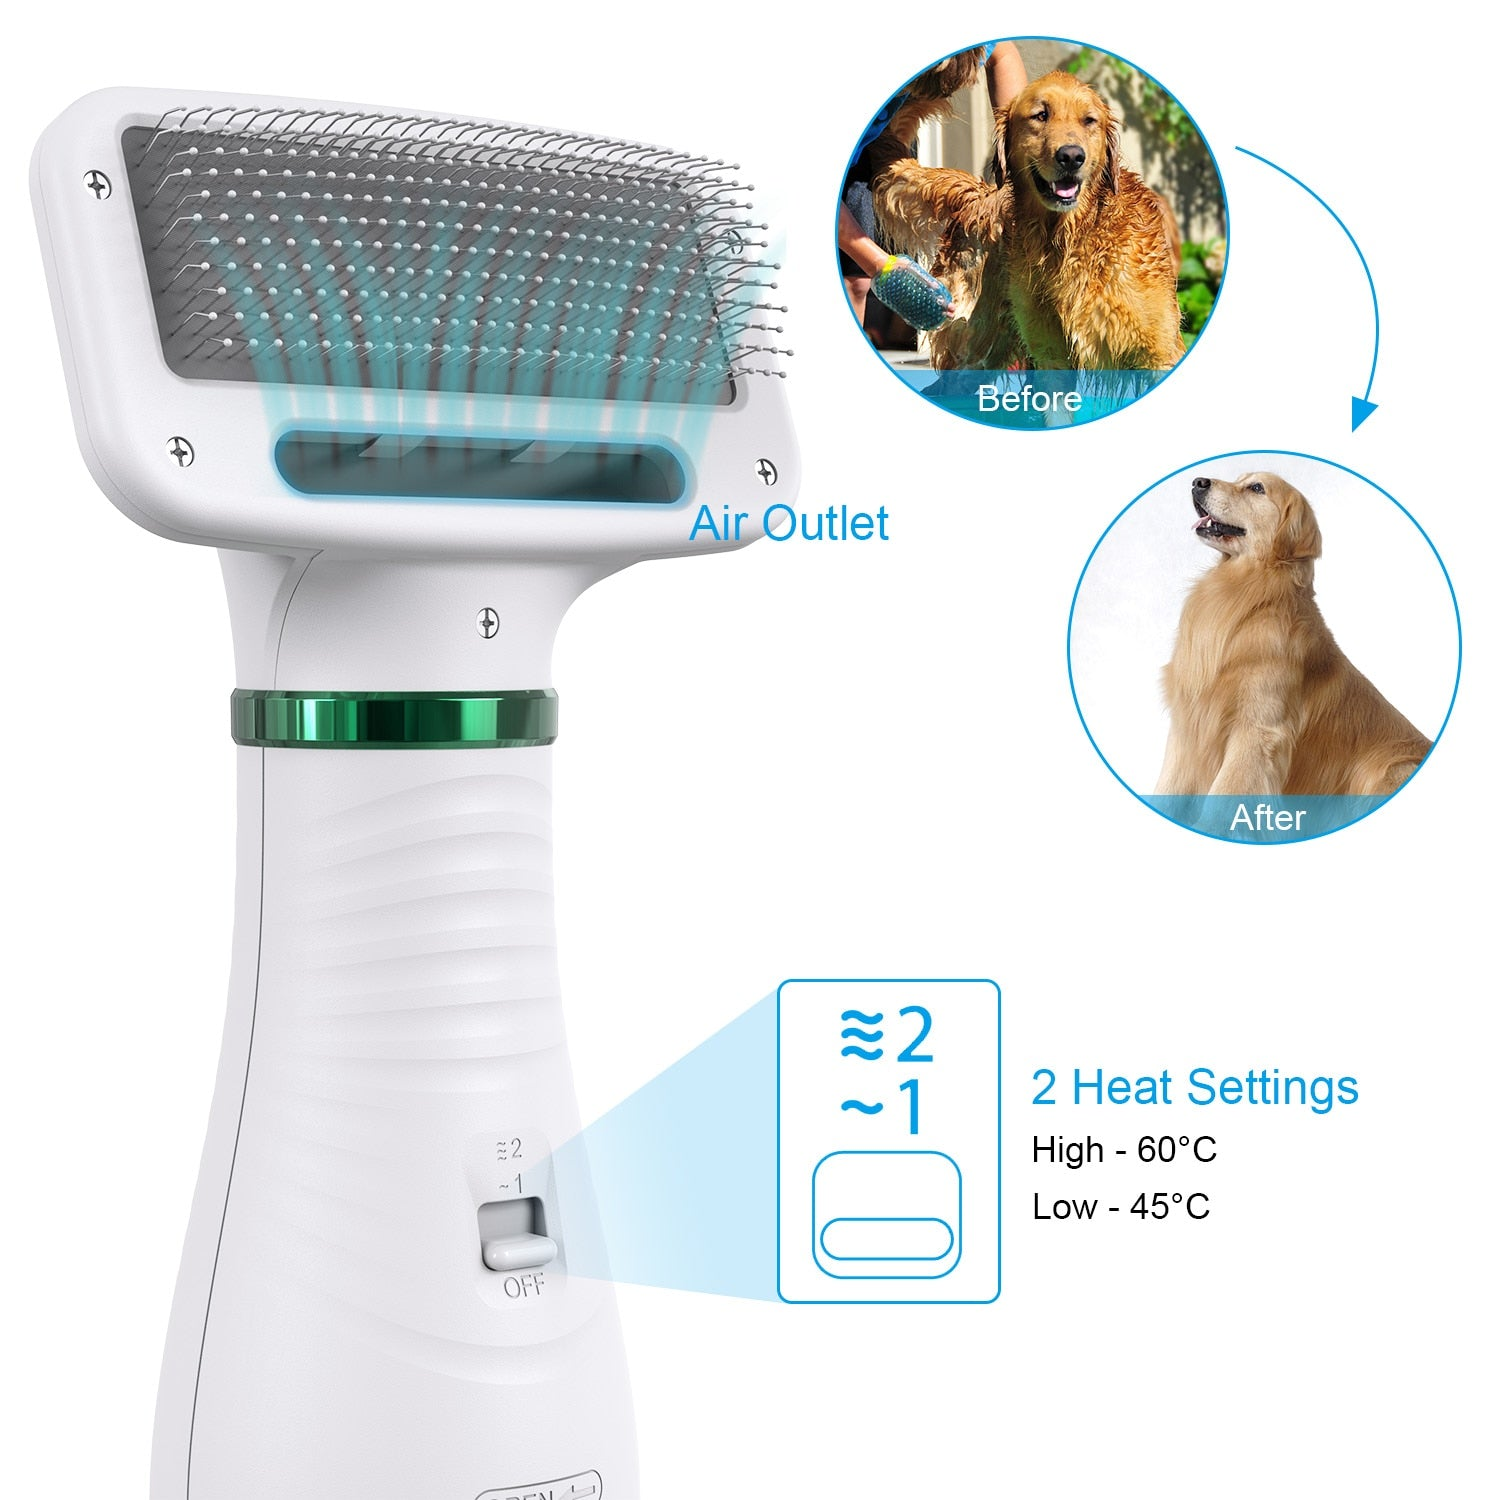 2-In-1 Portable Pet Hair Dryer - Comb Brush - PetsDoo